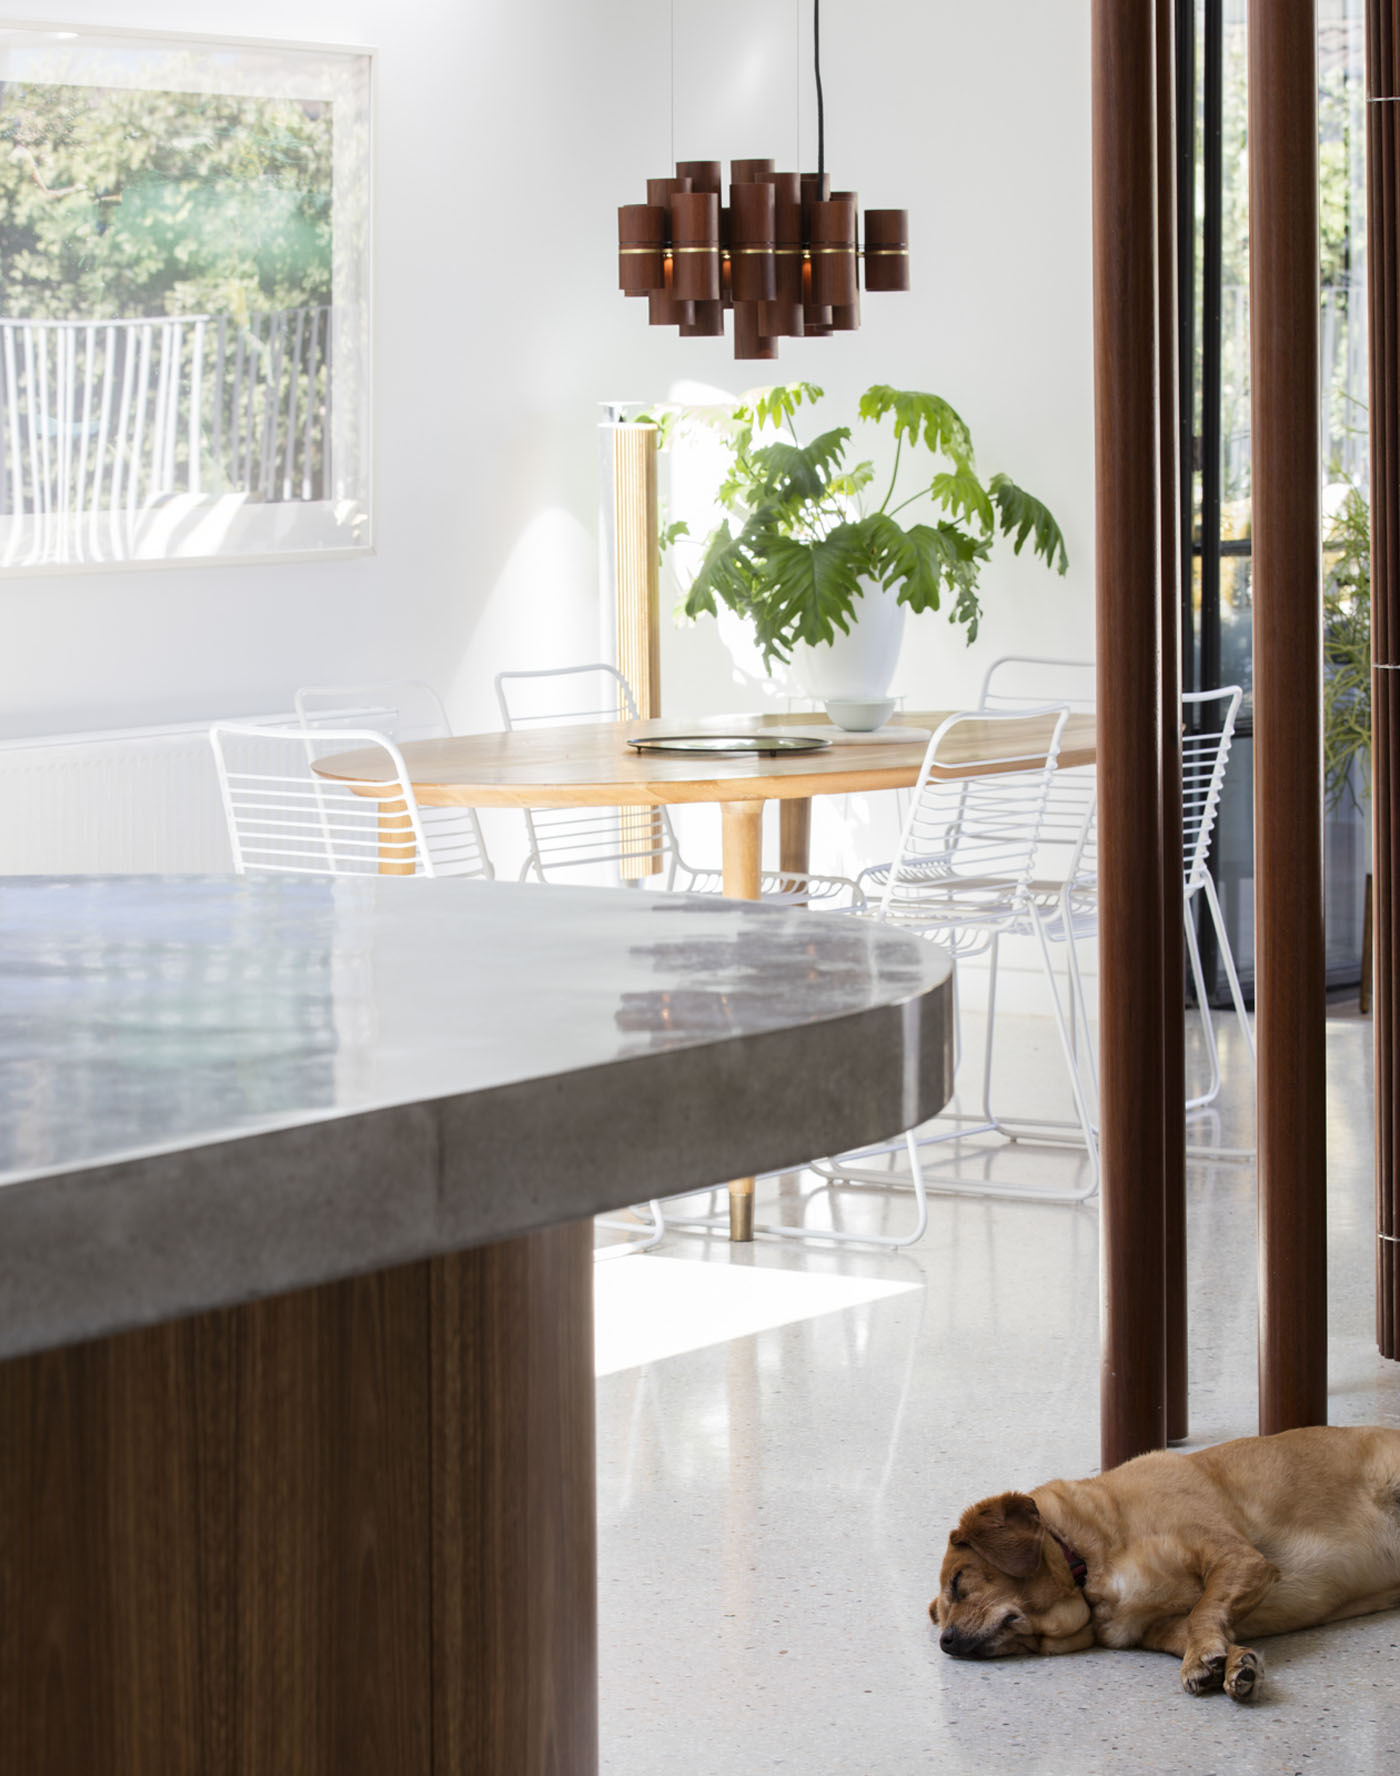 Dover Heights Pendants by award winning Sydney firm Sam Crawford Architects. The minimal interior with custom designed pendant cluster.